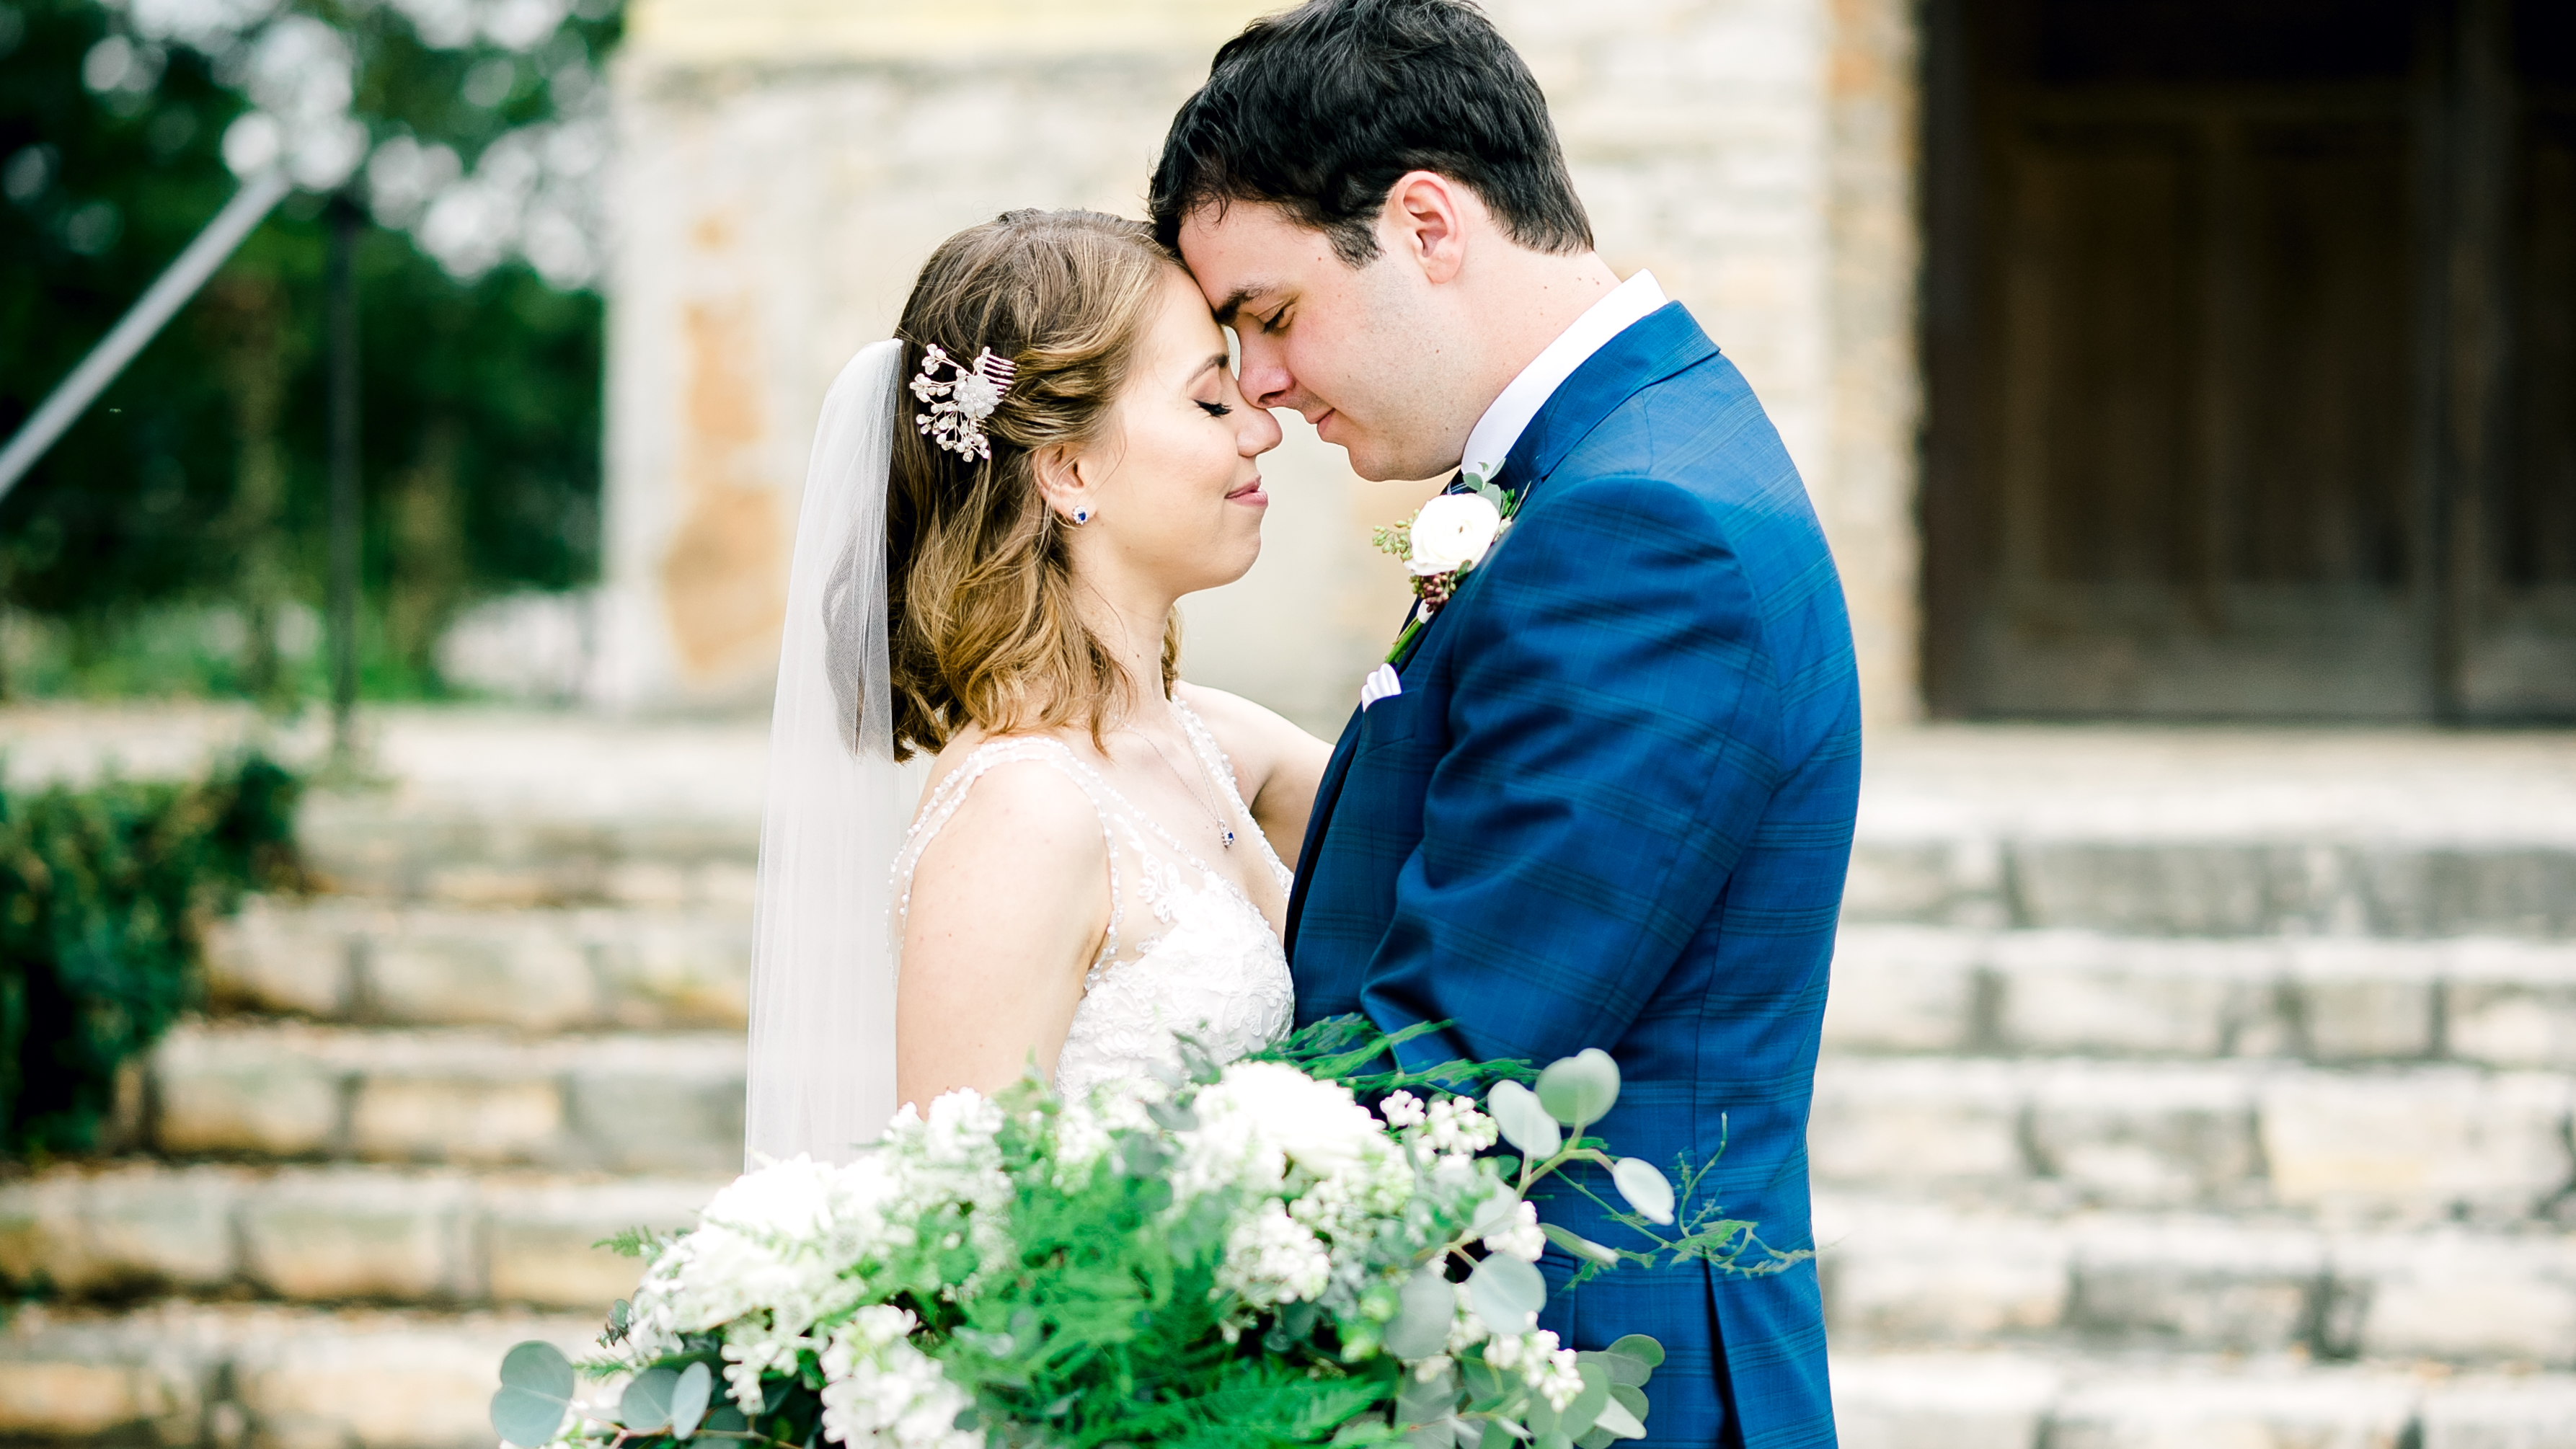 Emily + Kevin | Dripping Springs, Texas | Camp Lucy Ian's Chapel